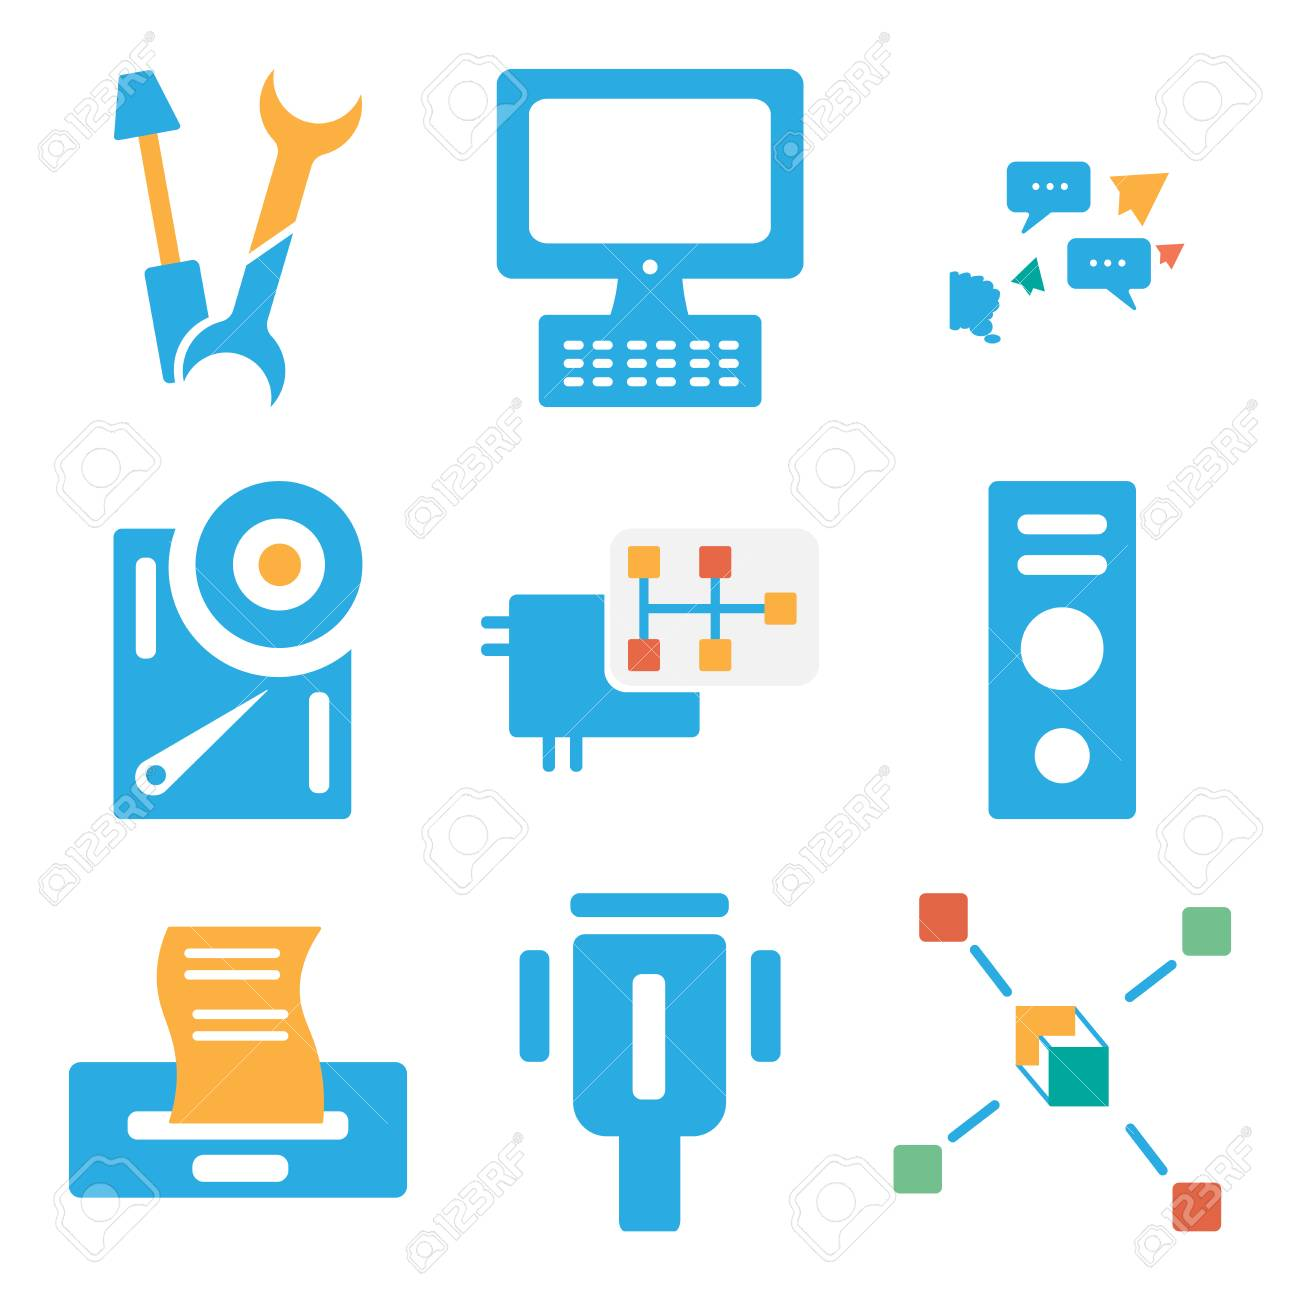 Set Of simple editable icons such as Networking, Cable, Printer,